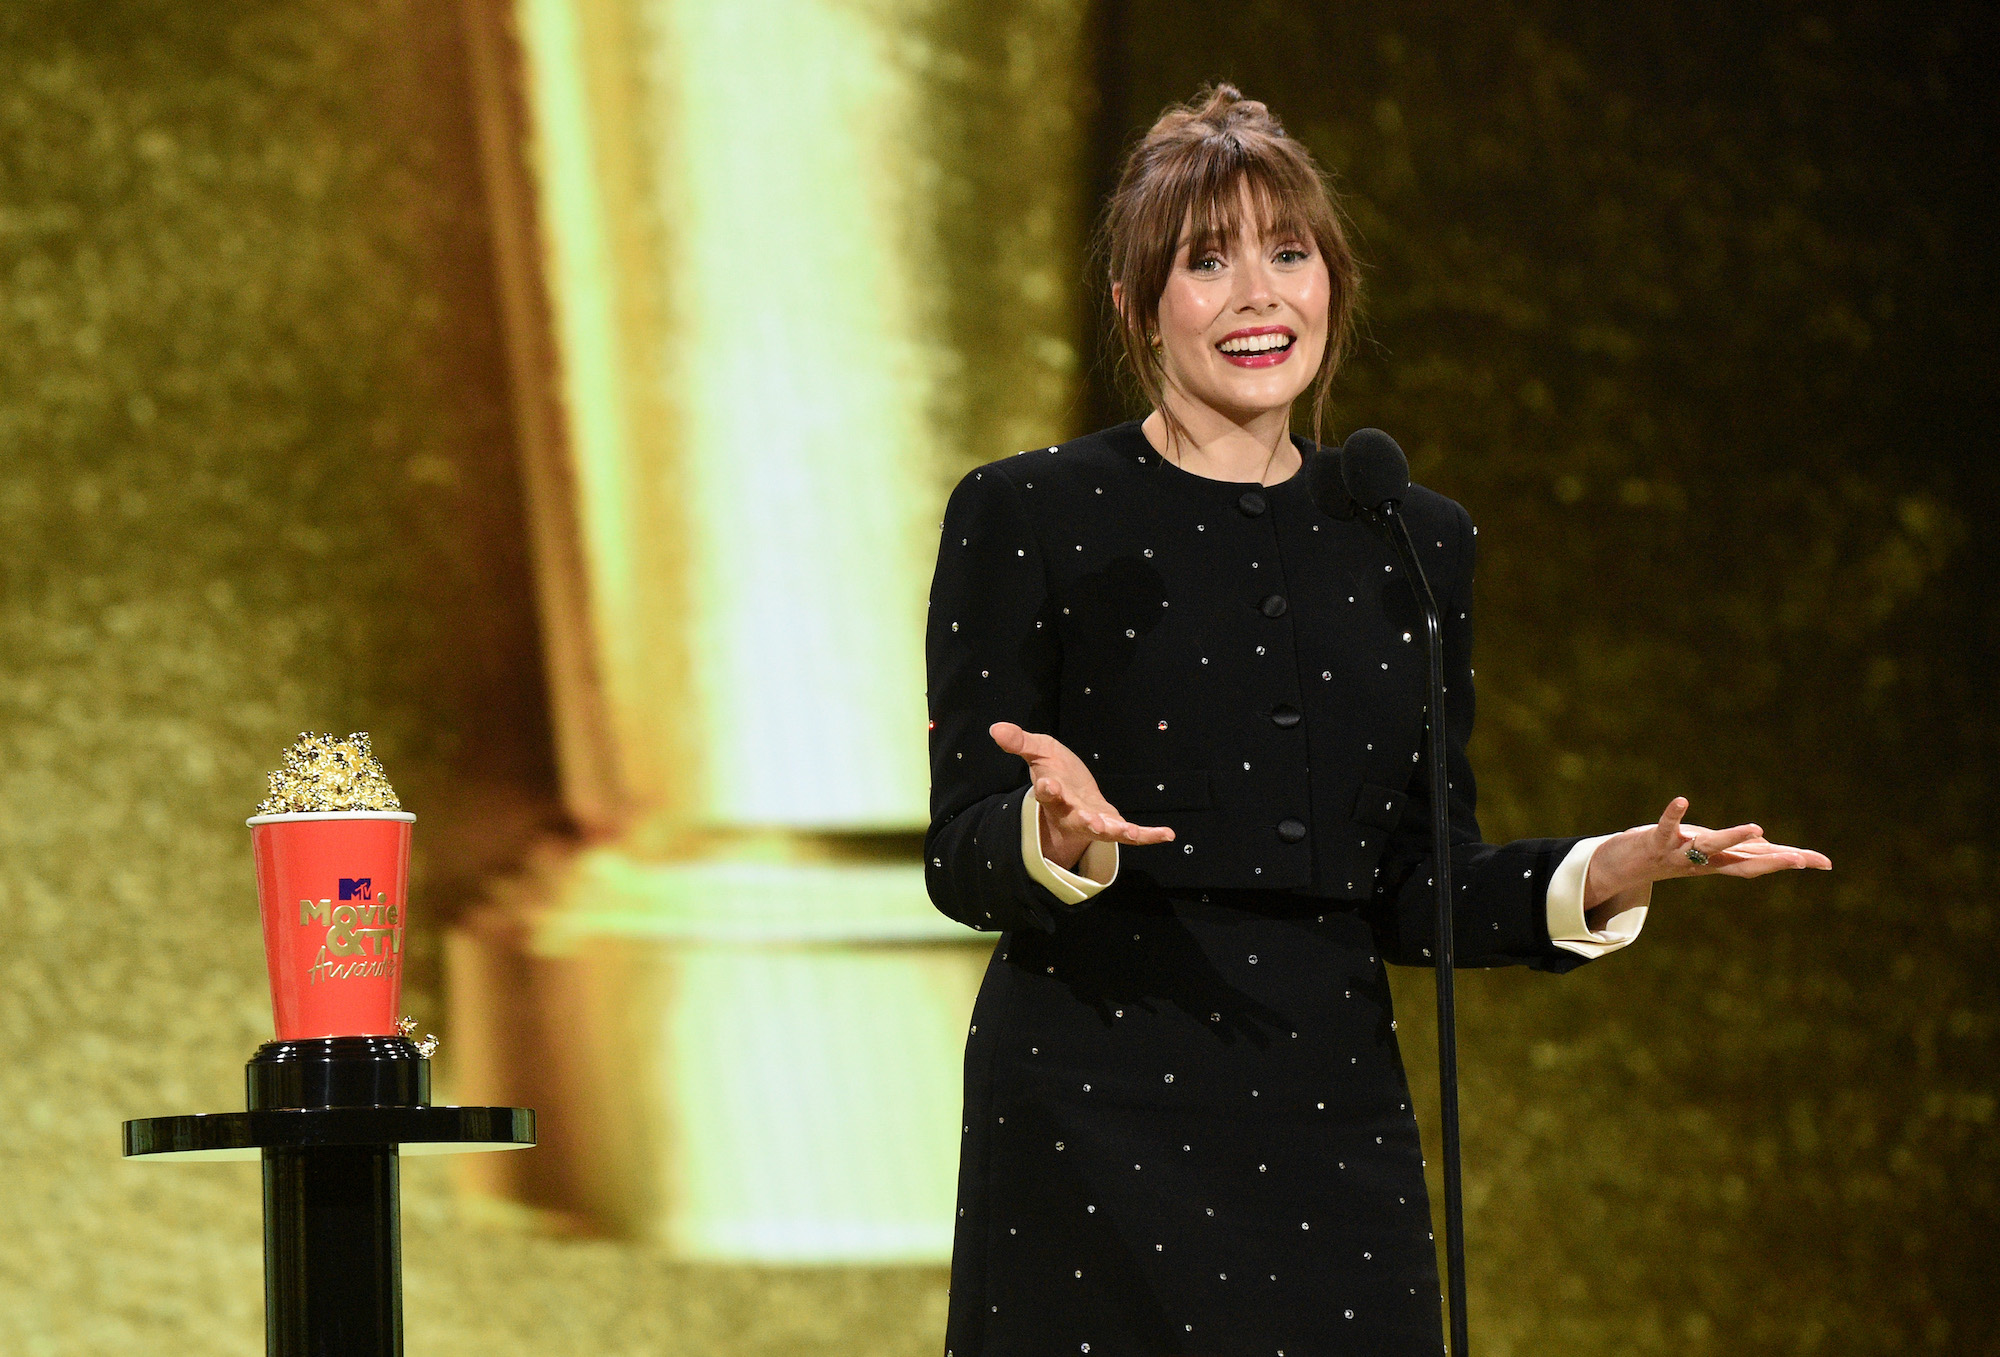 Elizabeth Olsen accepts the Best Performance in a Show award for 'WandaVision' onstage at the 2021 MTV Movie & TV Awards on May 16, 2021